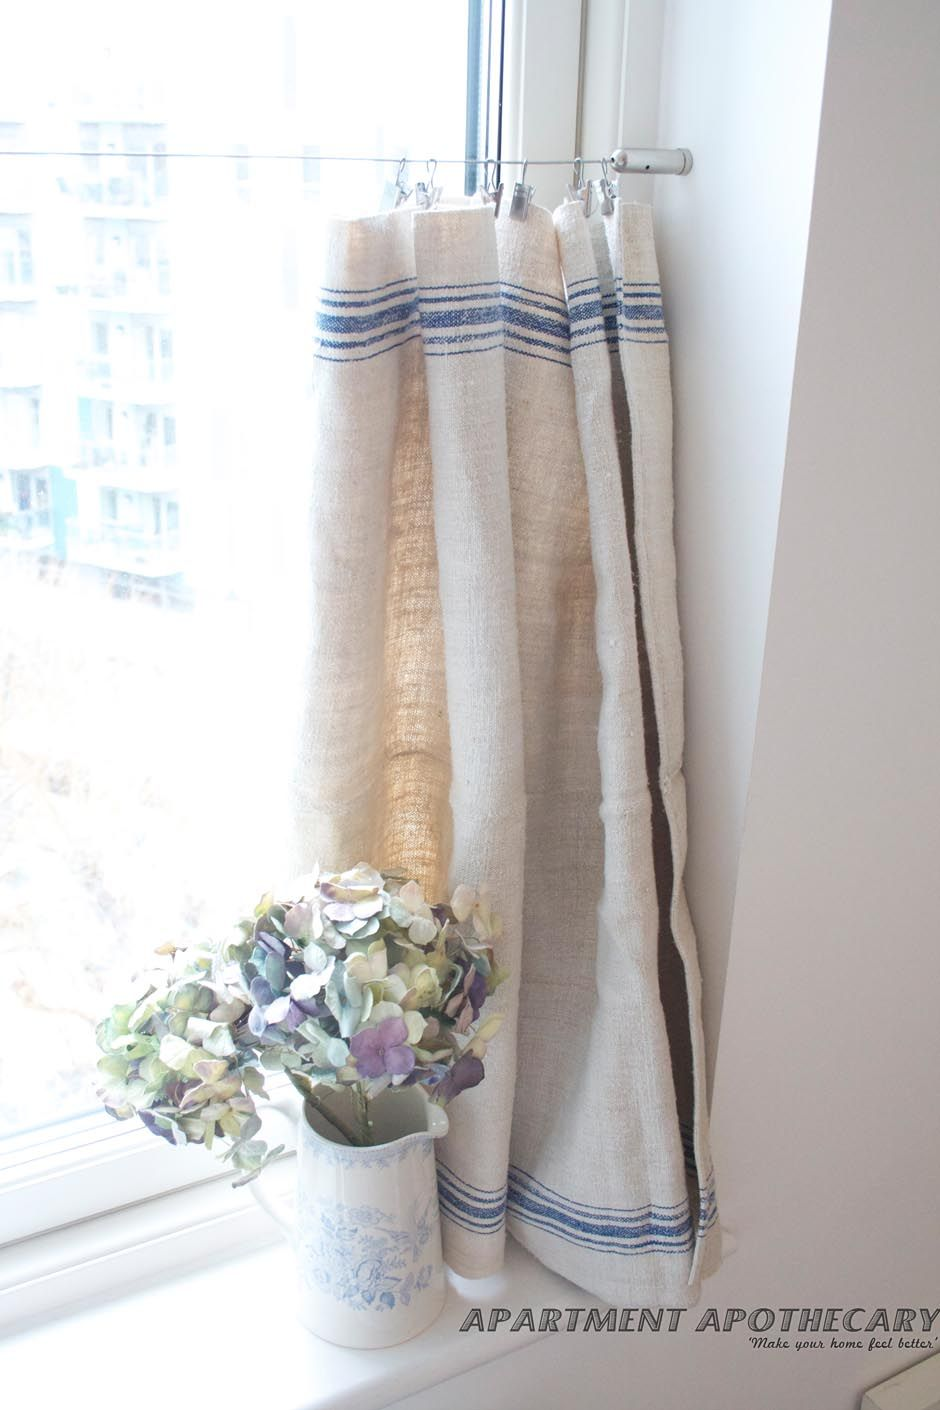 Visillos Cocina Ikea Delightful French Style No Sew Curtain Using One Grain Sack Ebay